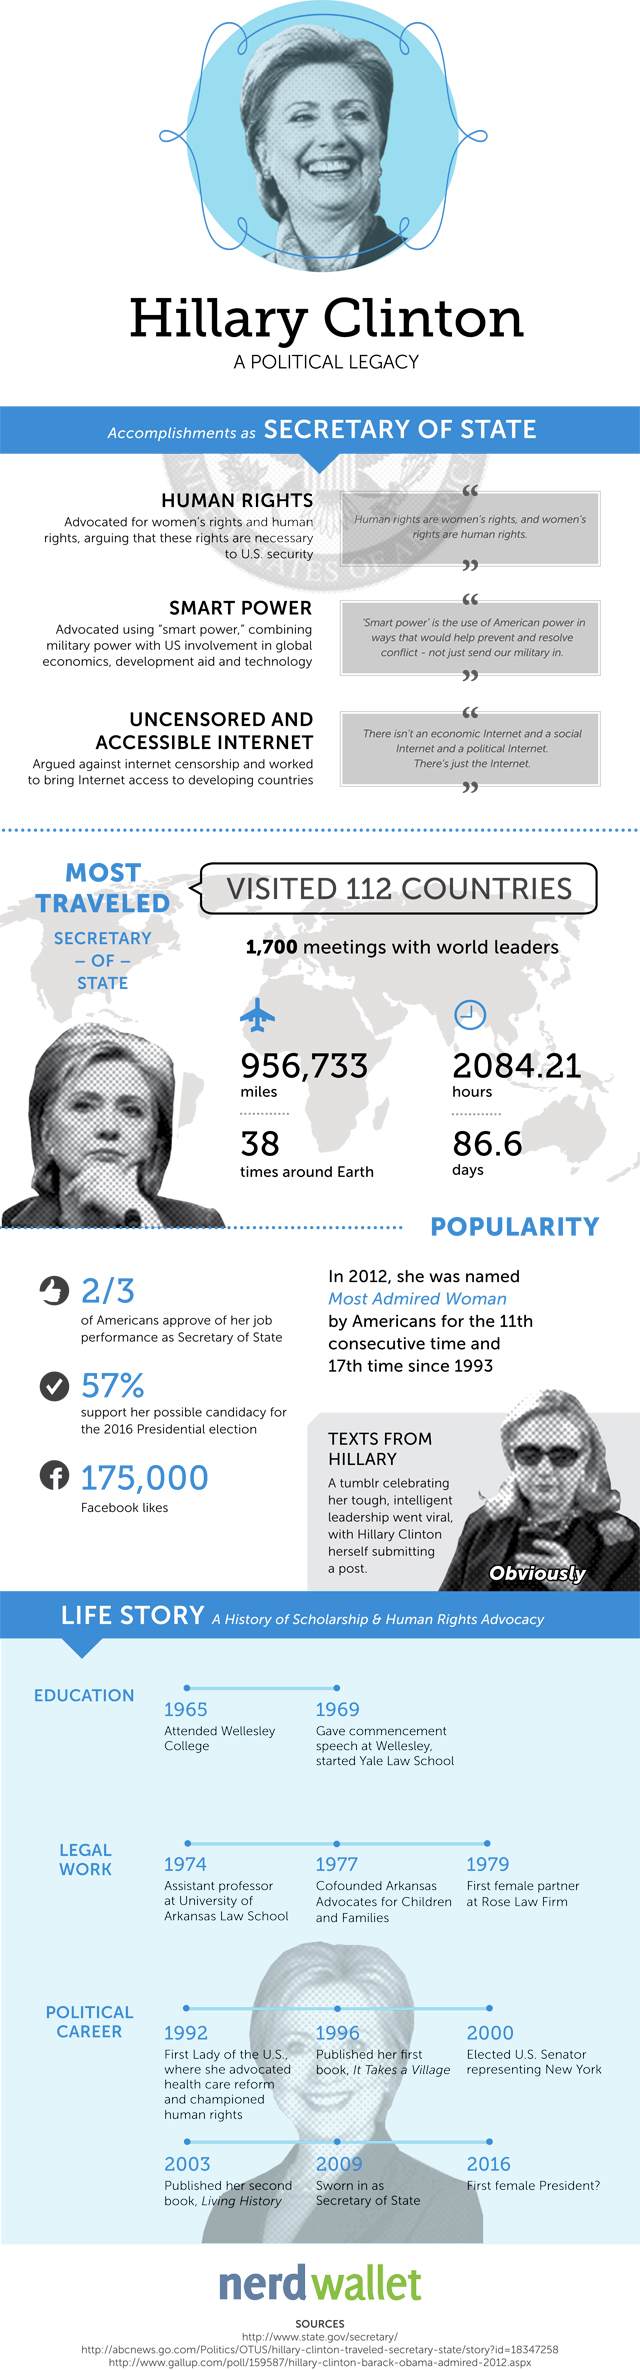 Hillary Clinton: An Infographic